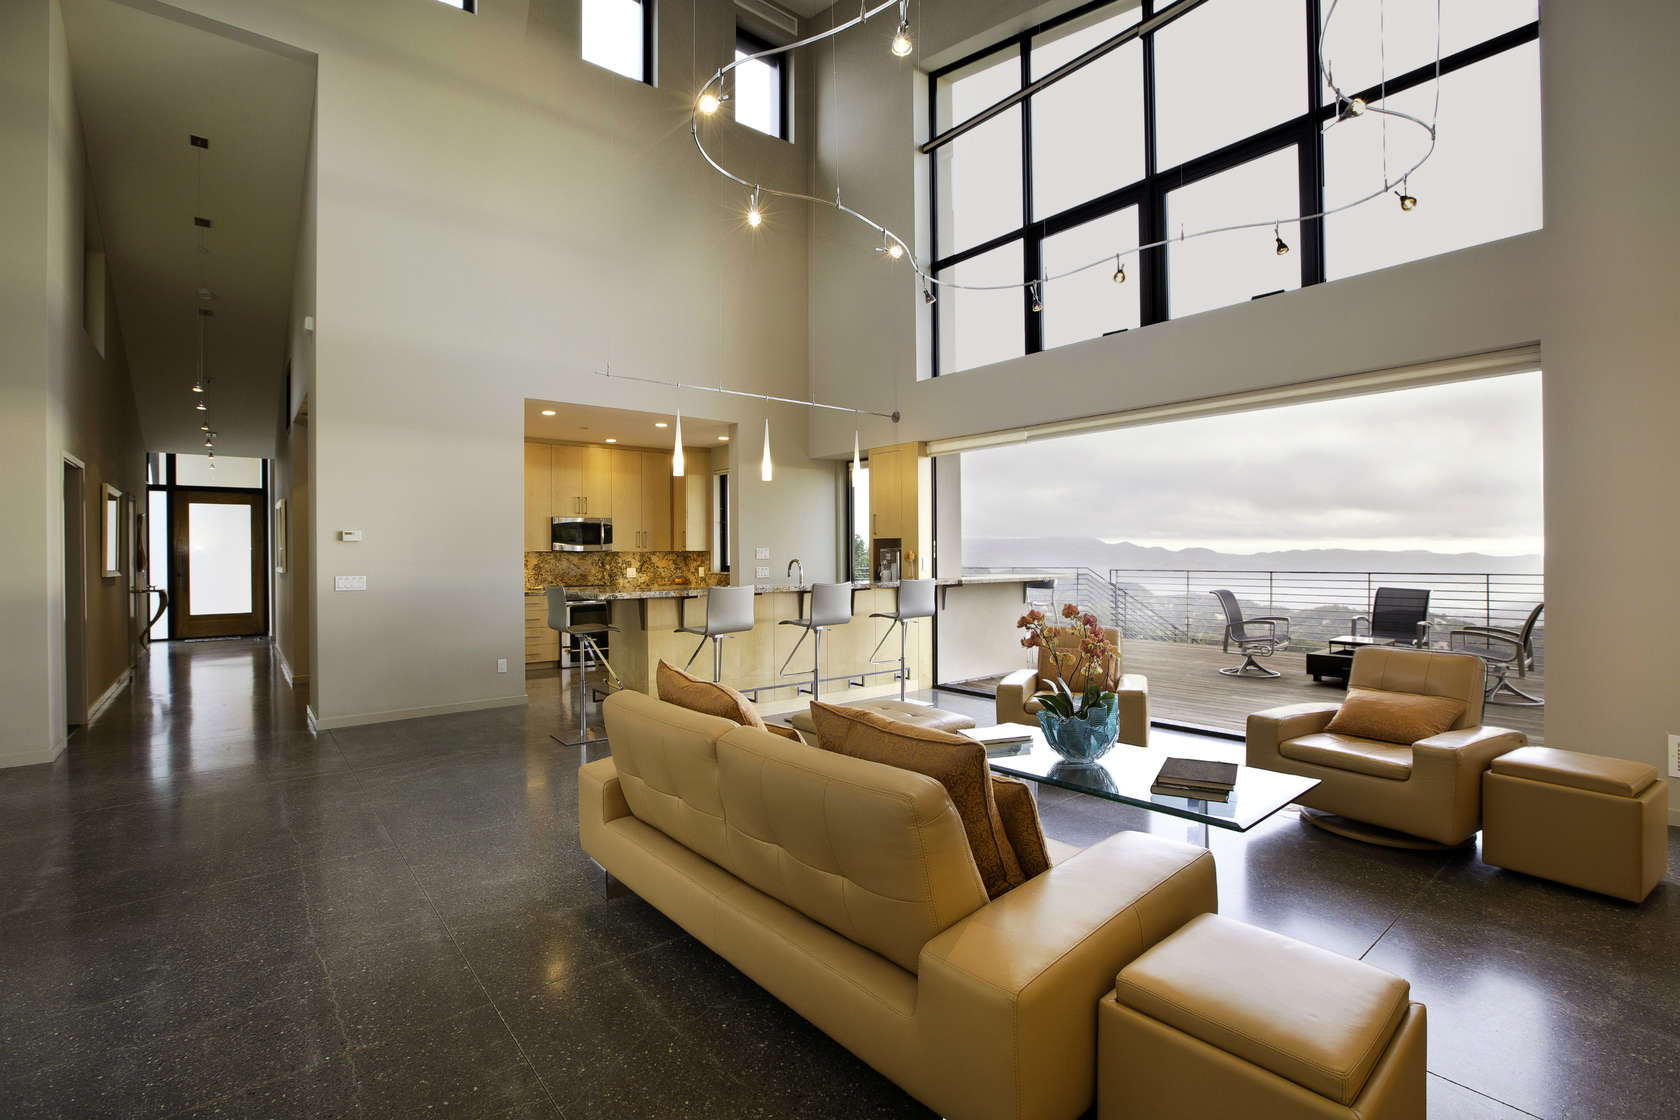 Buttery Leather Sofa - Custom home in sonoma gives a modern twist to wine country